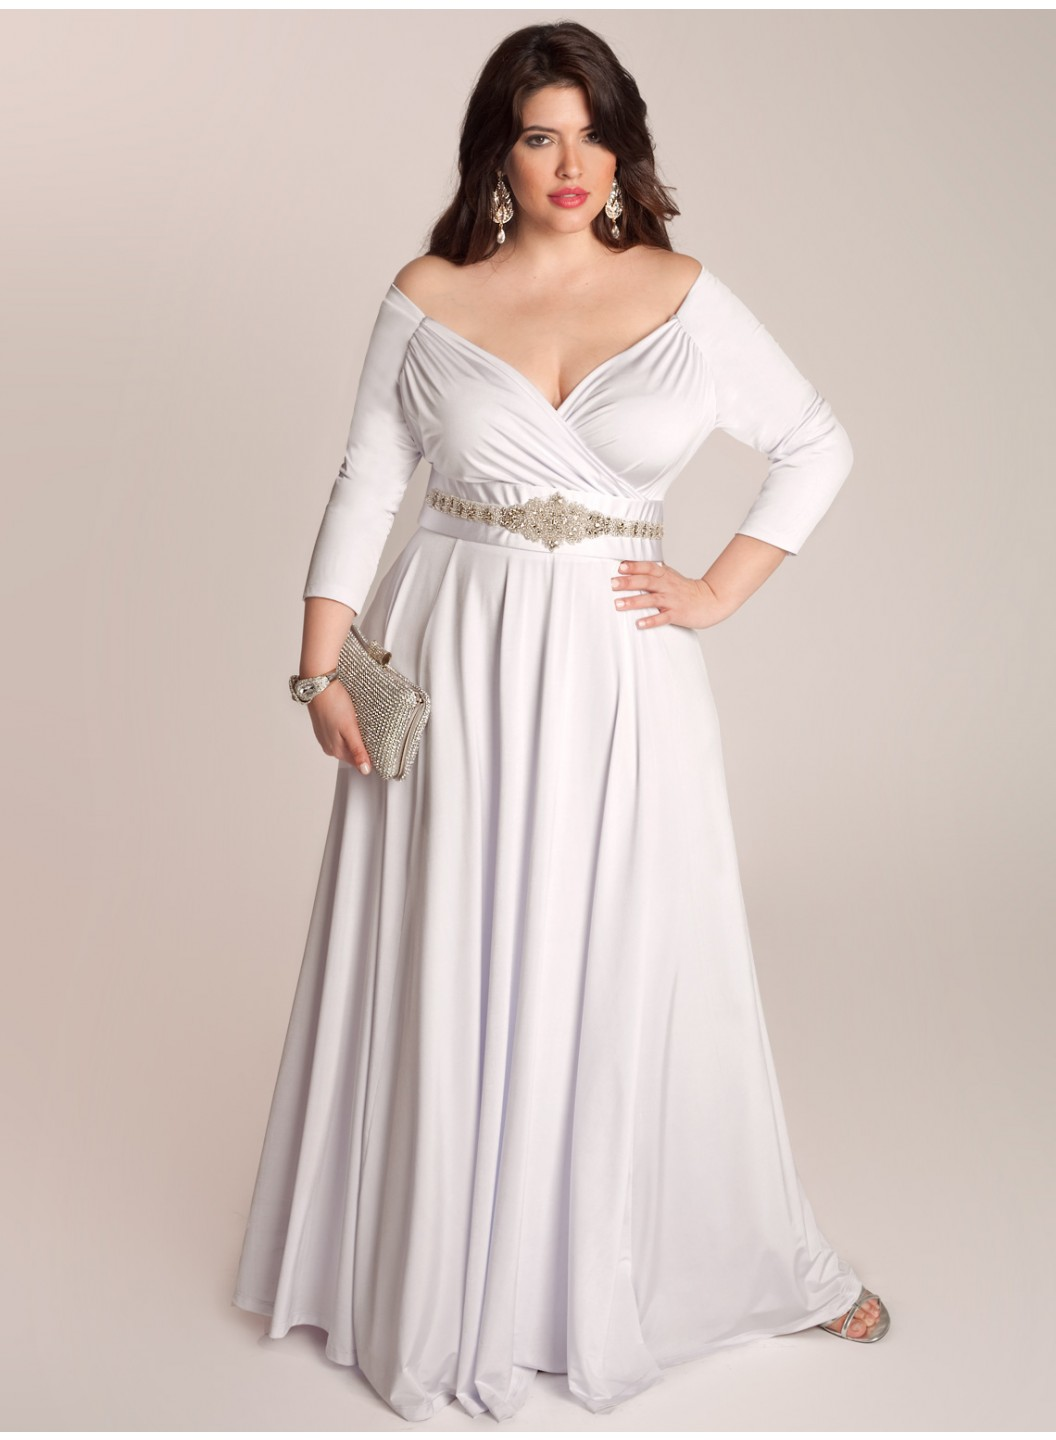 Plus Size Women's Dresses for Weddings, Formal Dresses with Sleeves, Black Dresses Plus Size, Formal Gowns for Plus Size Women, Plus Size Bridesmaid Gowns, Plus Size Prom Dresses 2015, Short Plus Size Prom Dresses, Plus Size Little Black Dress with Sleeves